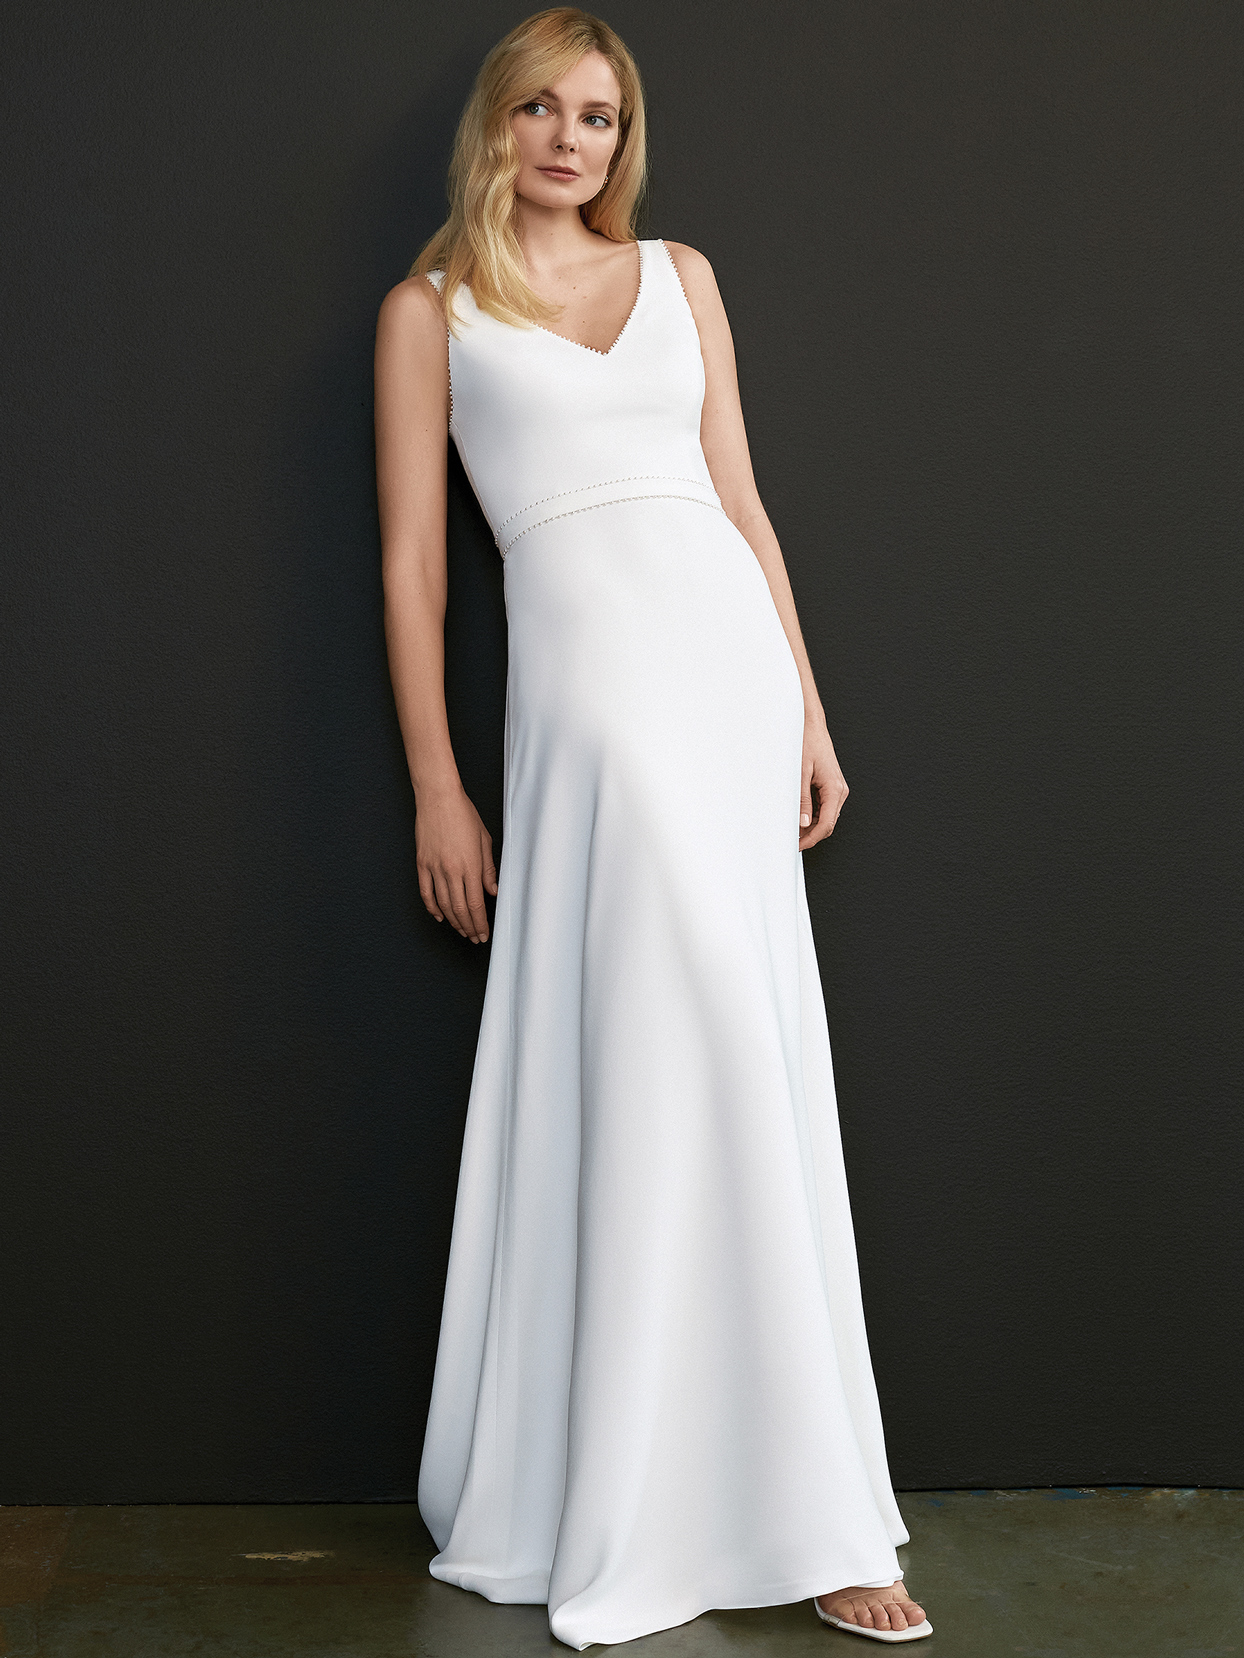 savannah miller v-neck a-line wedding dress spring 2021